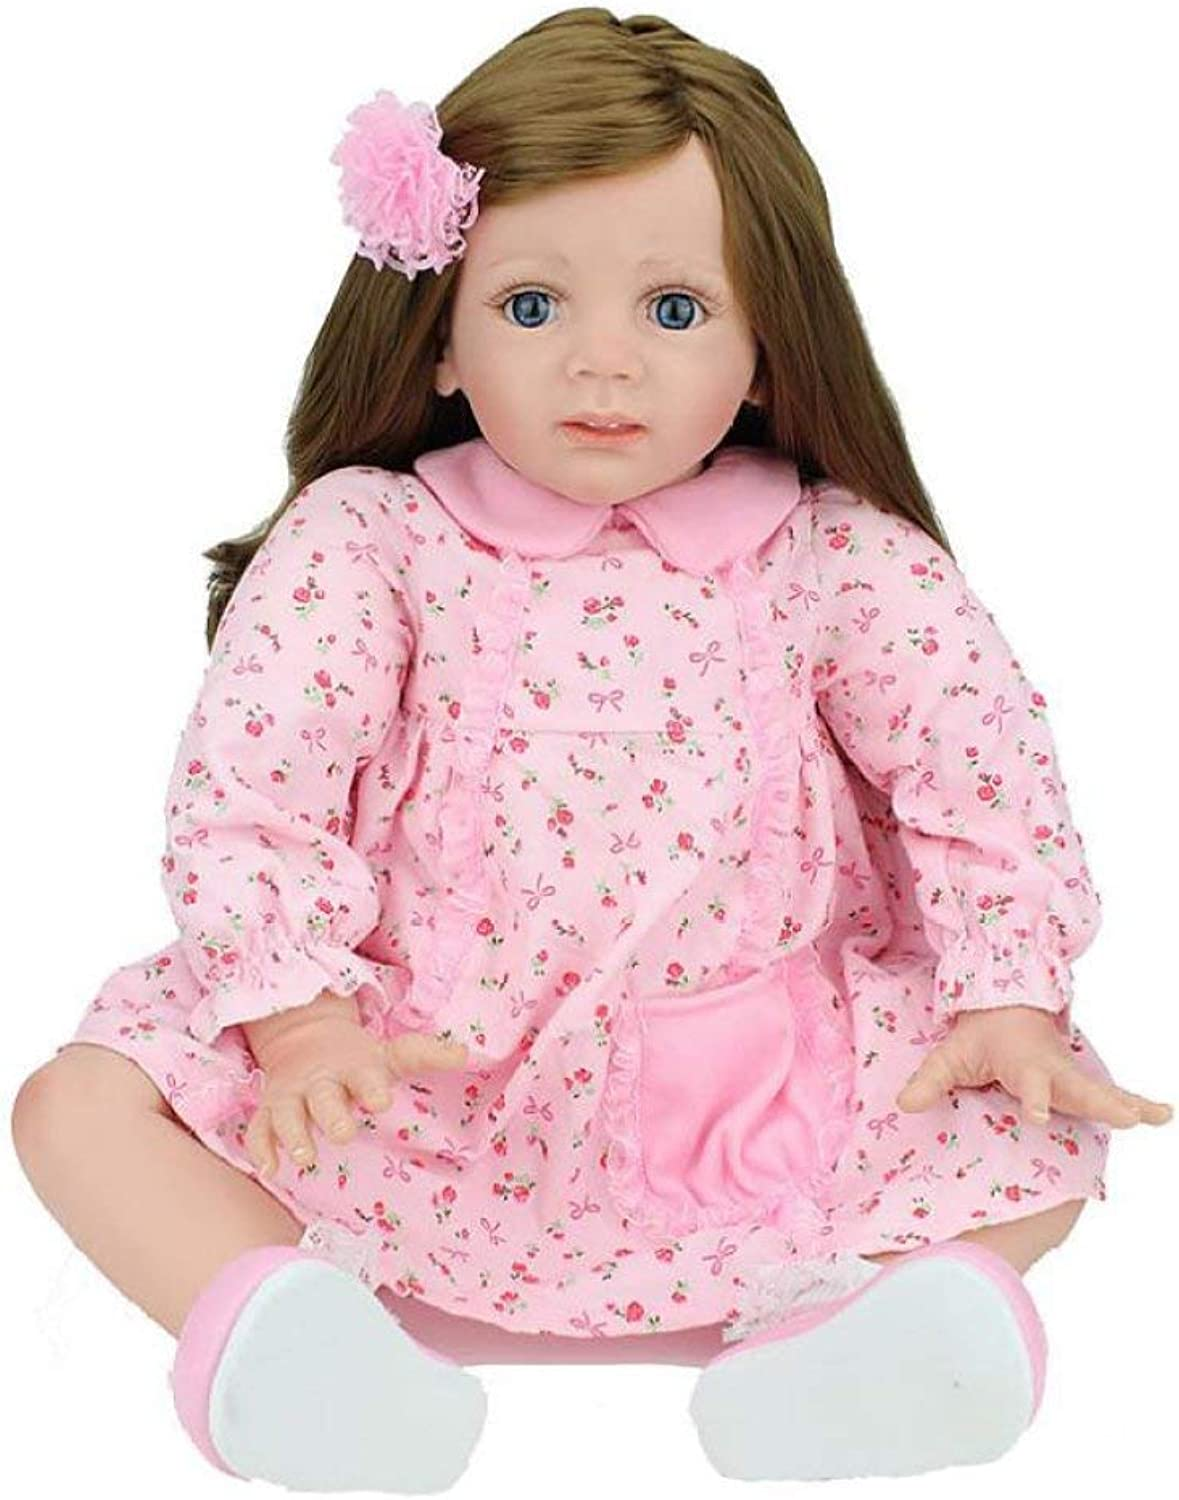 HSDDA Baby Play Toy 23 Inch Reborn Baby Dolls Realistic Handmade Lifelike Silicone Vinyl Baby Doll 60 Cm Soft Simulation Magnetic Mouth Eyes Open Girl Favorite Gift Baby Doll